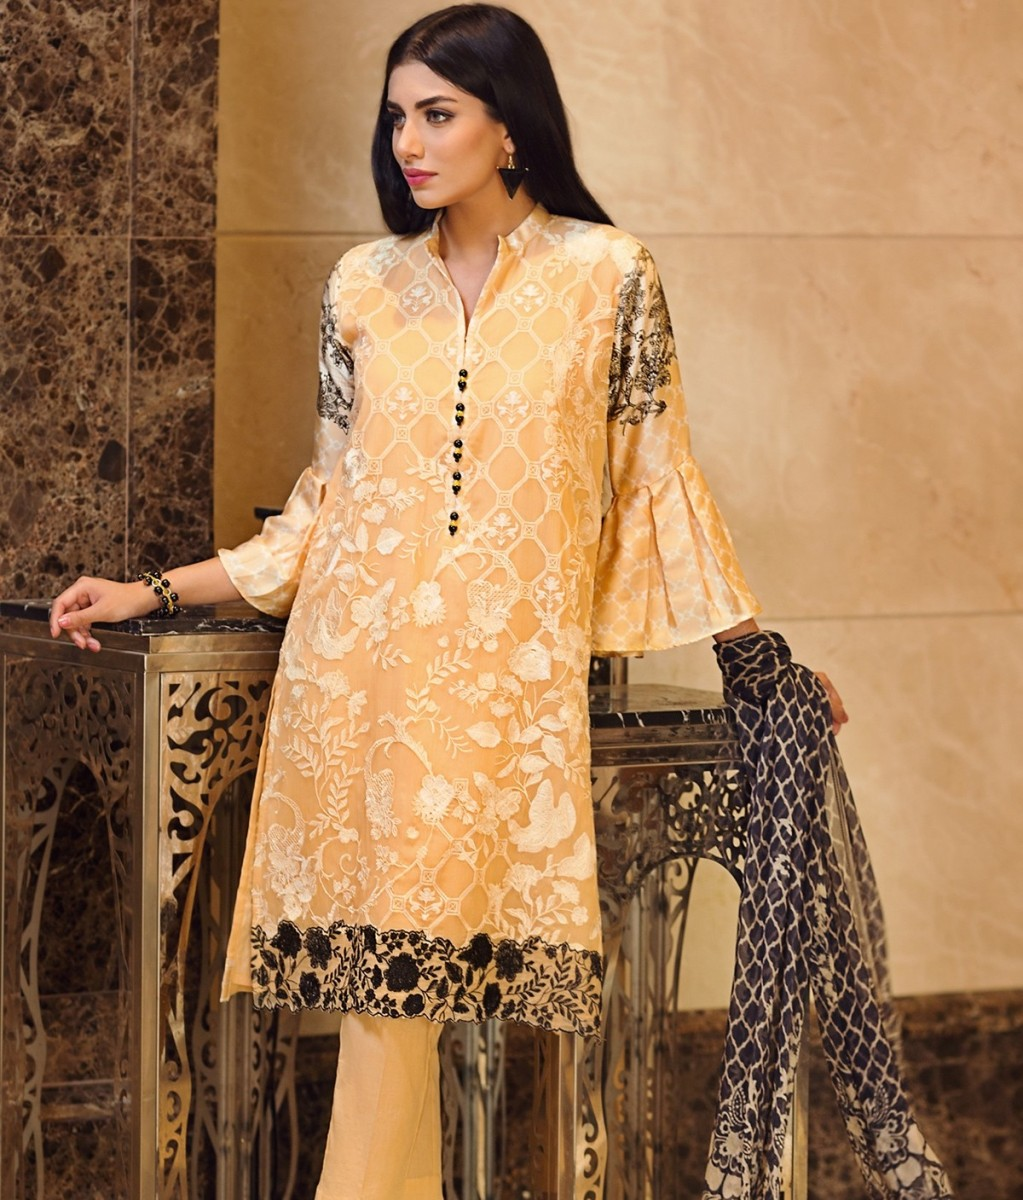 Embroidered formal chiffon Eid dress by Khaadi